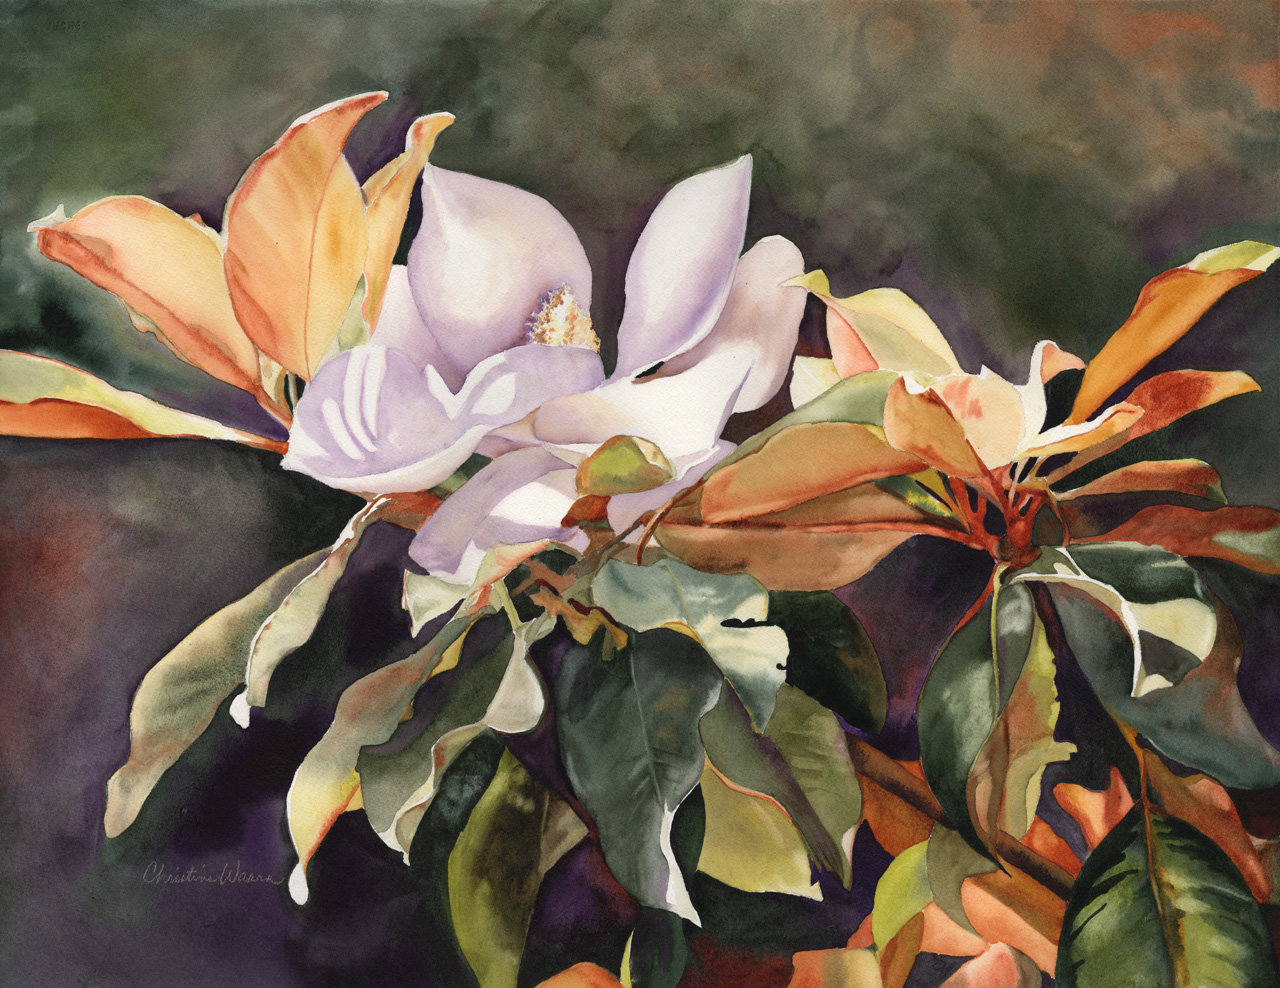 Watercolor painting of magnolias blooming on tree